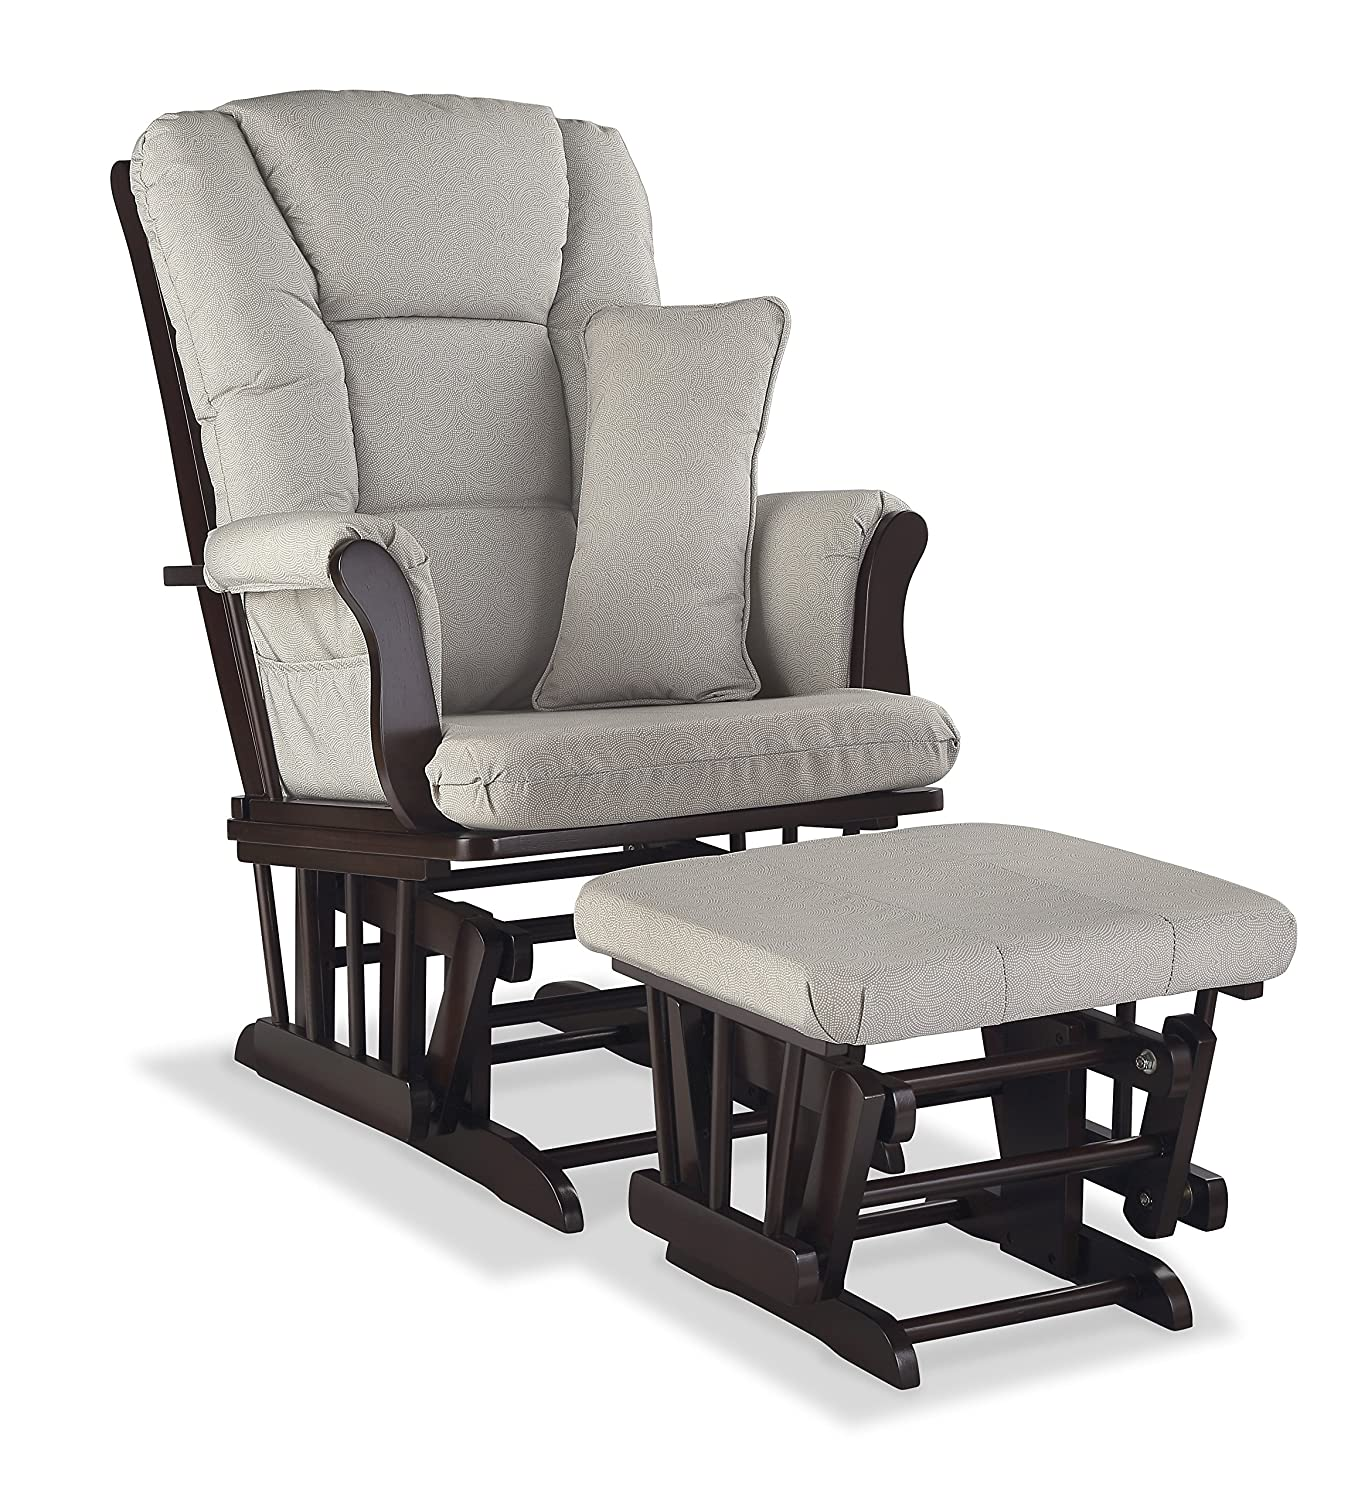 Storkcraft Tuscany Custom Glider and Ottoman with Free Lumbar Pillow, Espresso/Grey Stork Craft 06554-589